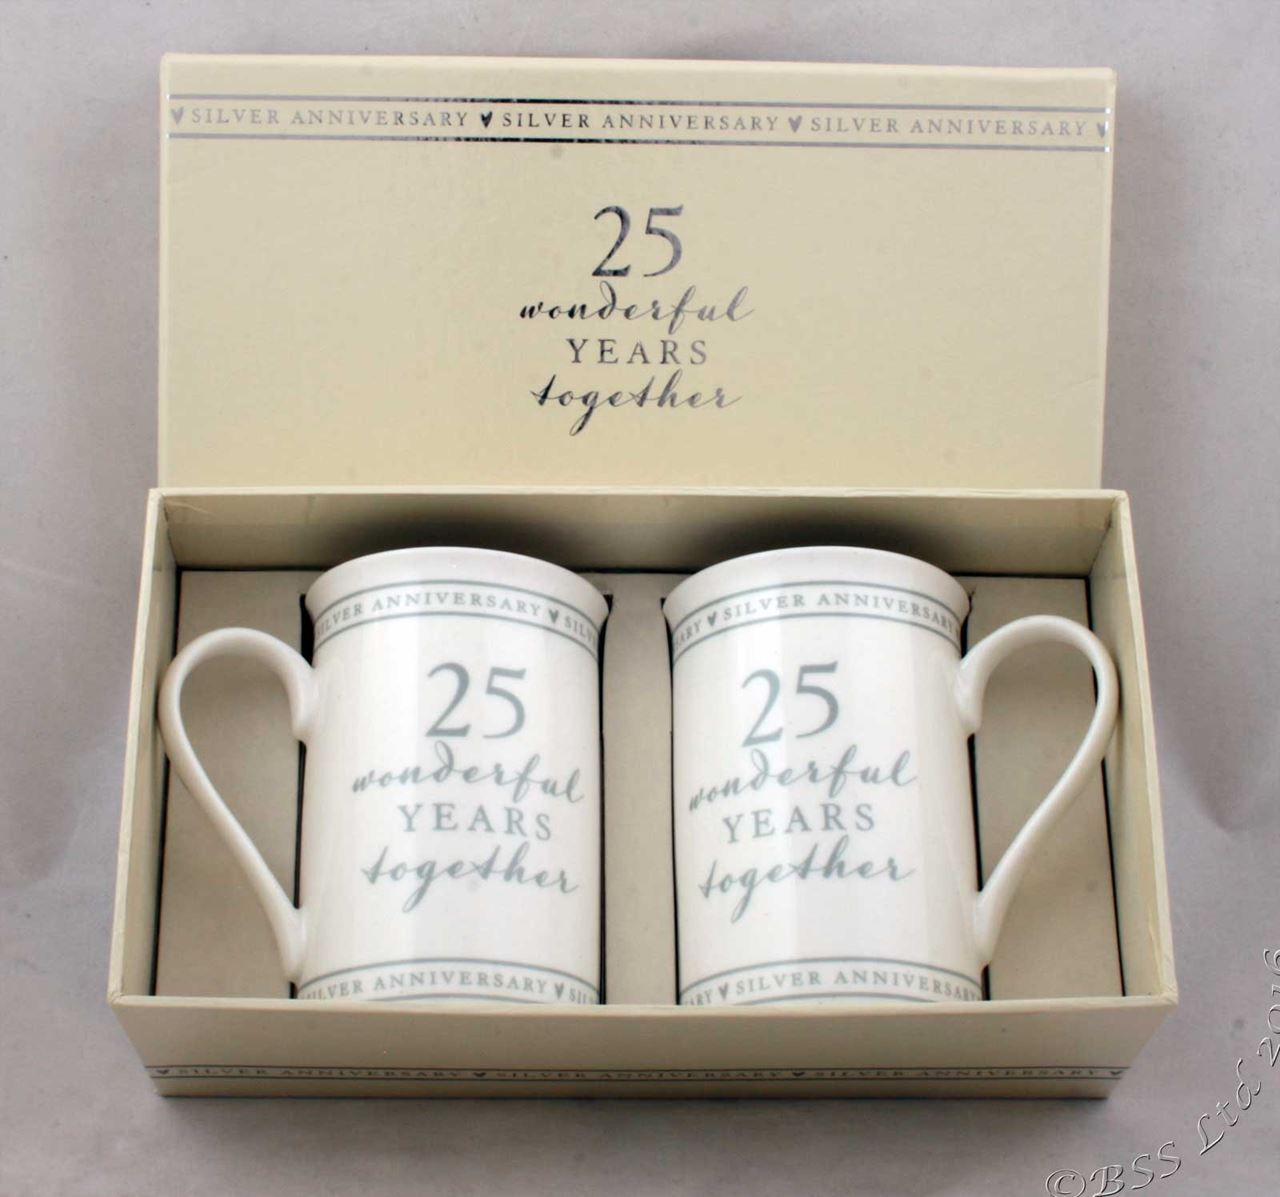 Gift For 25 Wedding Anniversary: Show Details For 25th Anniversary Gift Set Of 2 China Mugs